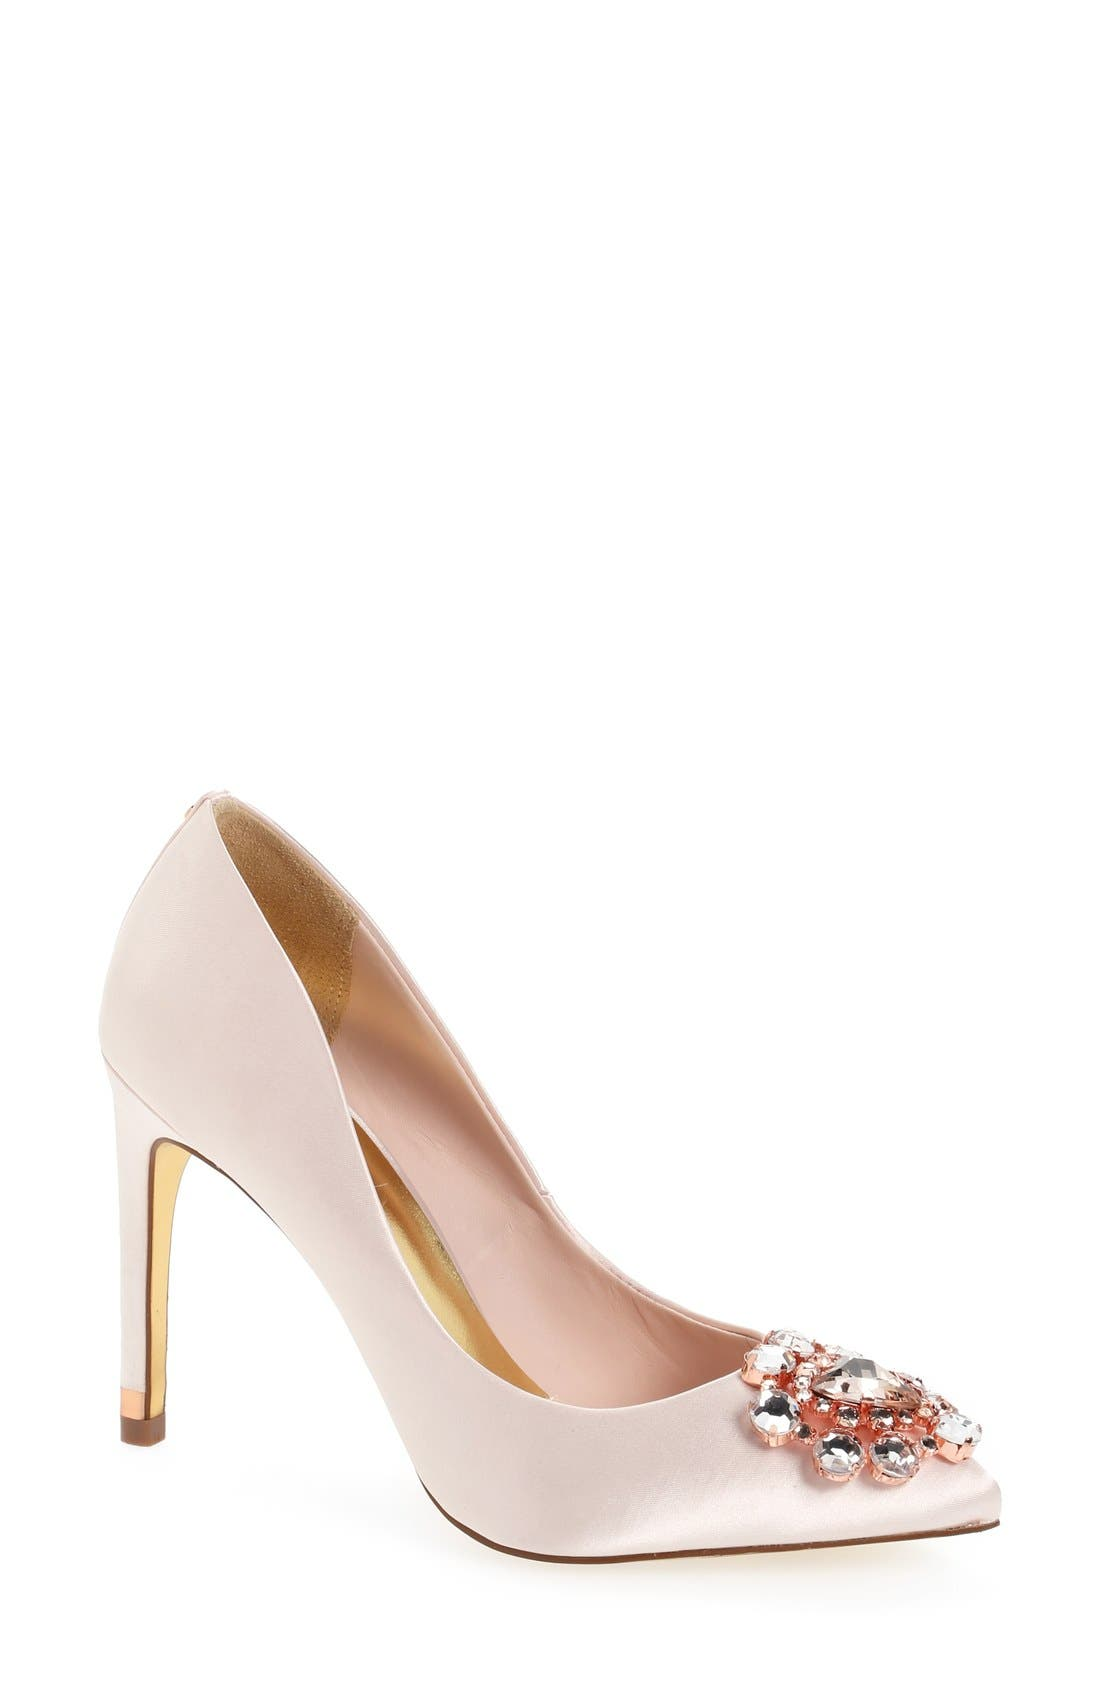 Main Image - Ted Baker London 'Torela' Pump